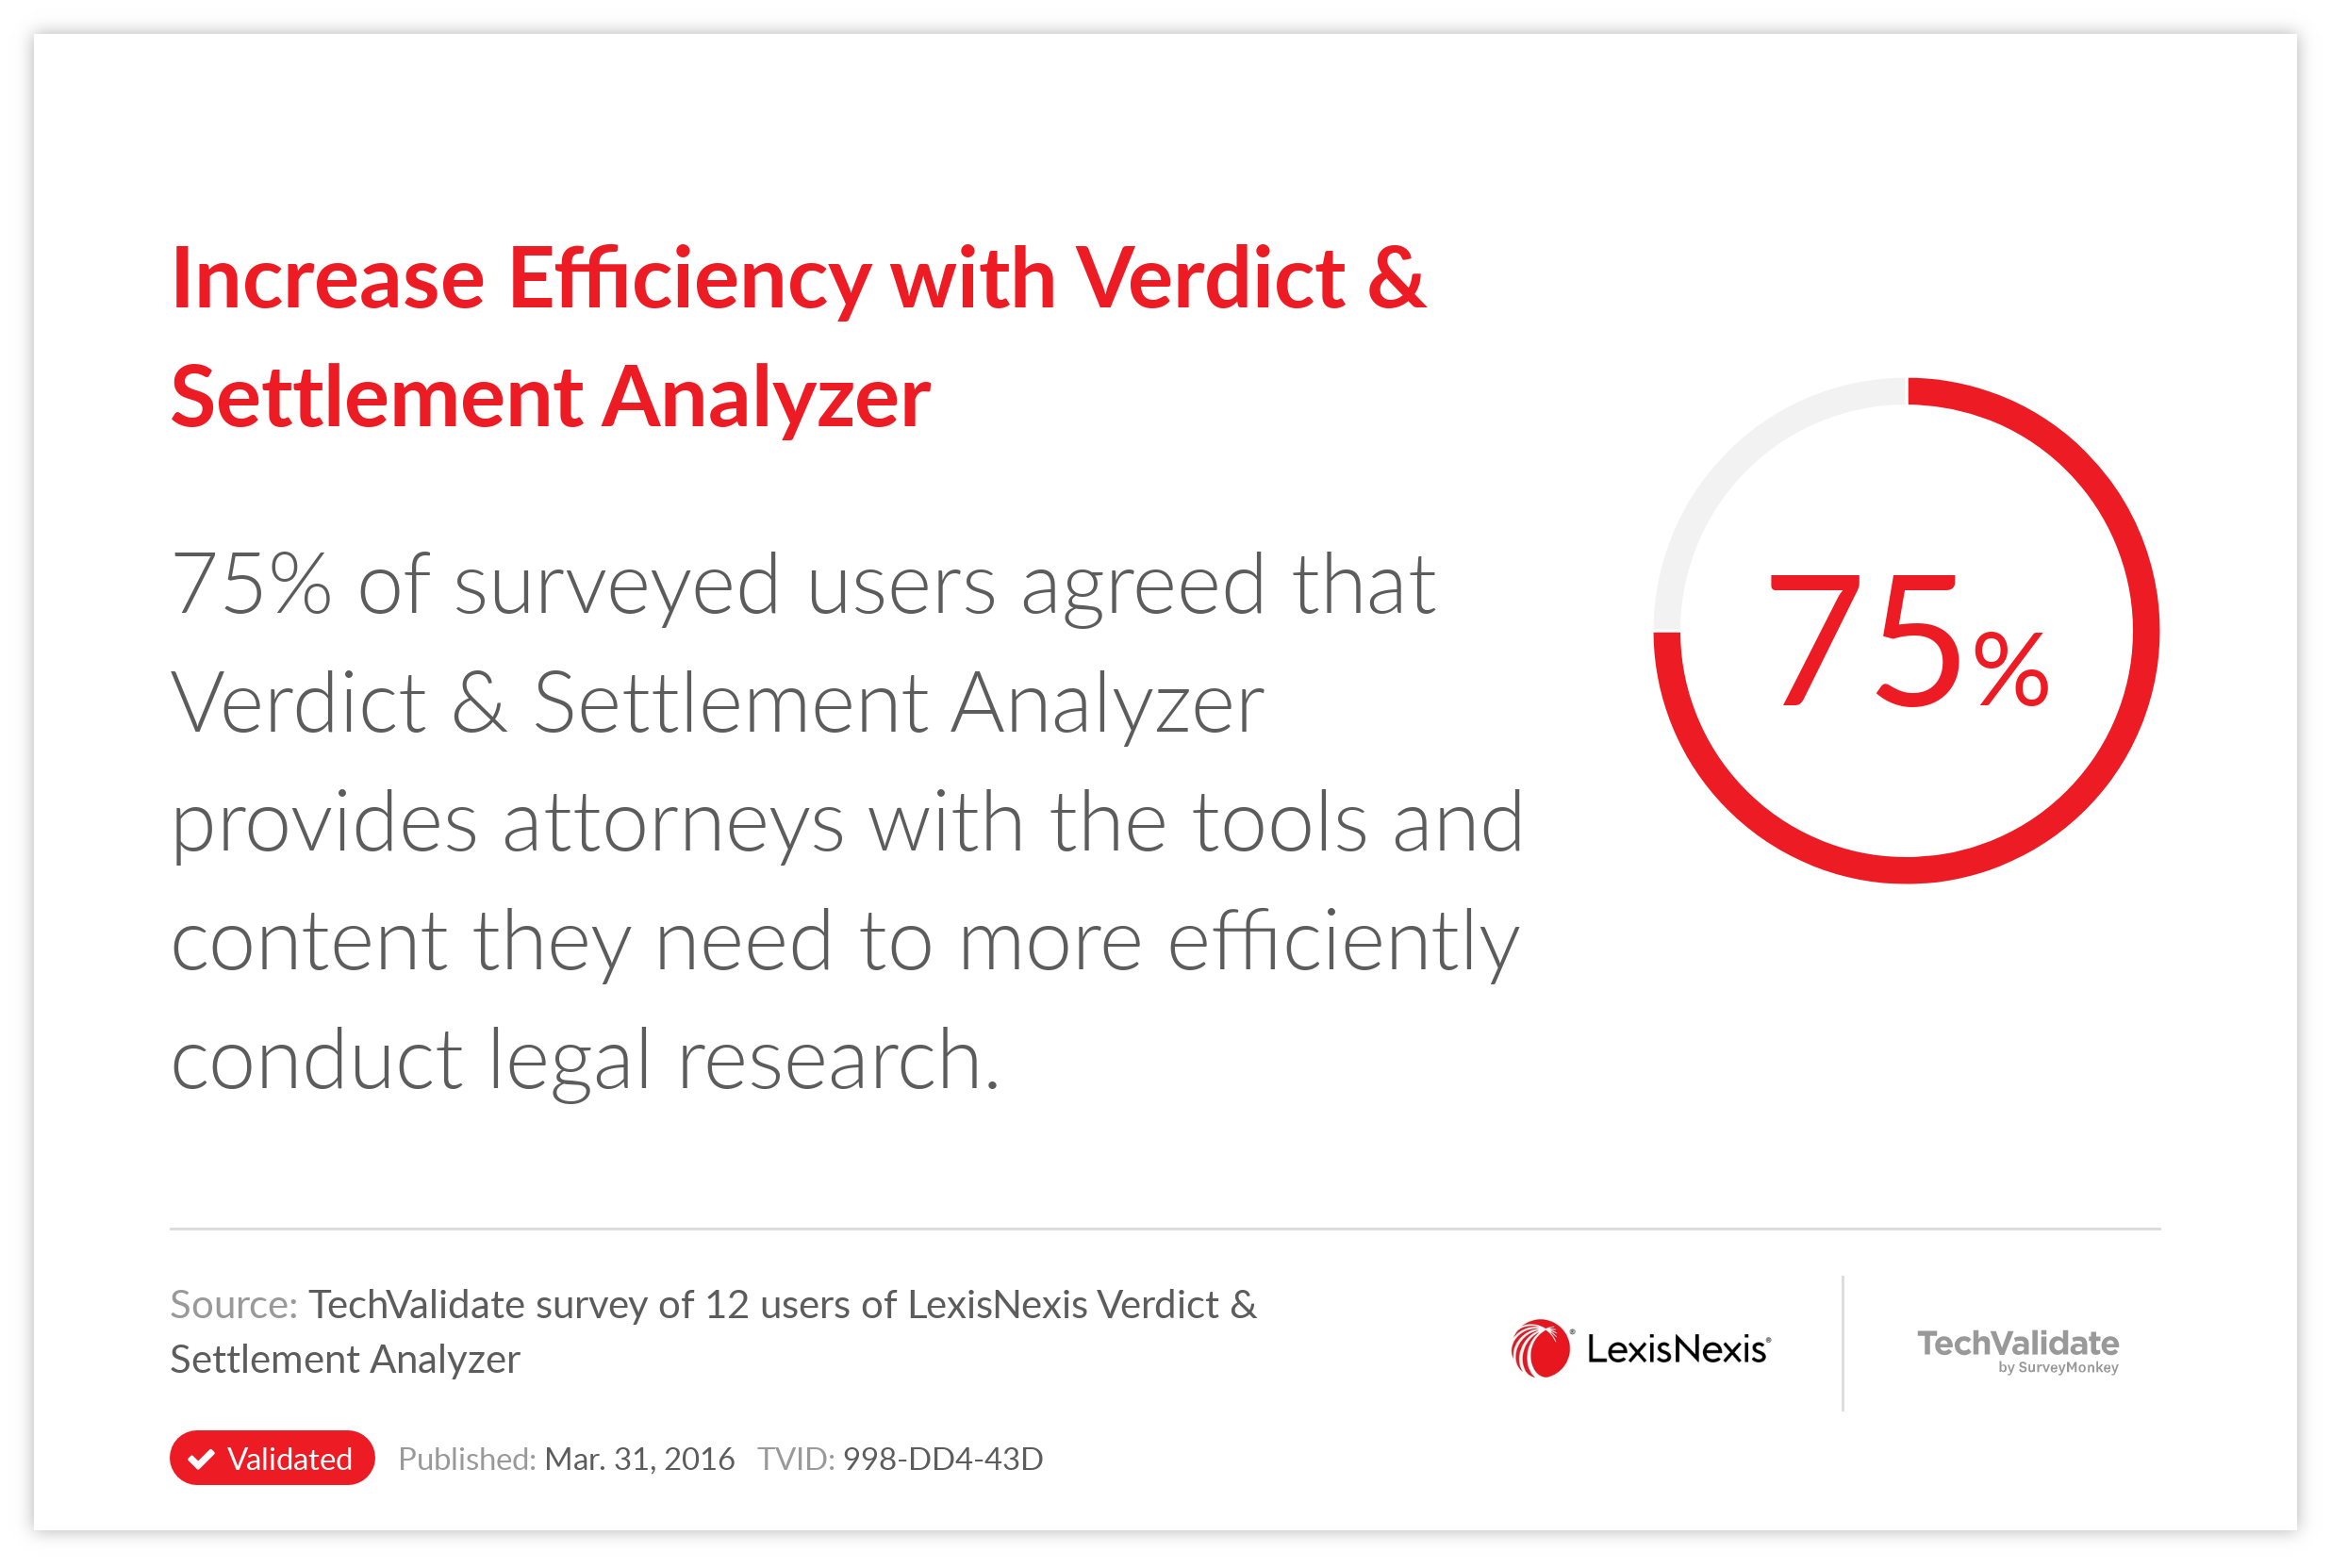 Increase Efficiency with Verdict & Settlement Analyzer